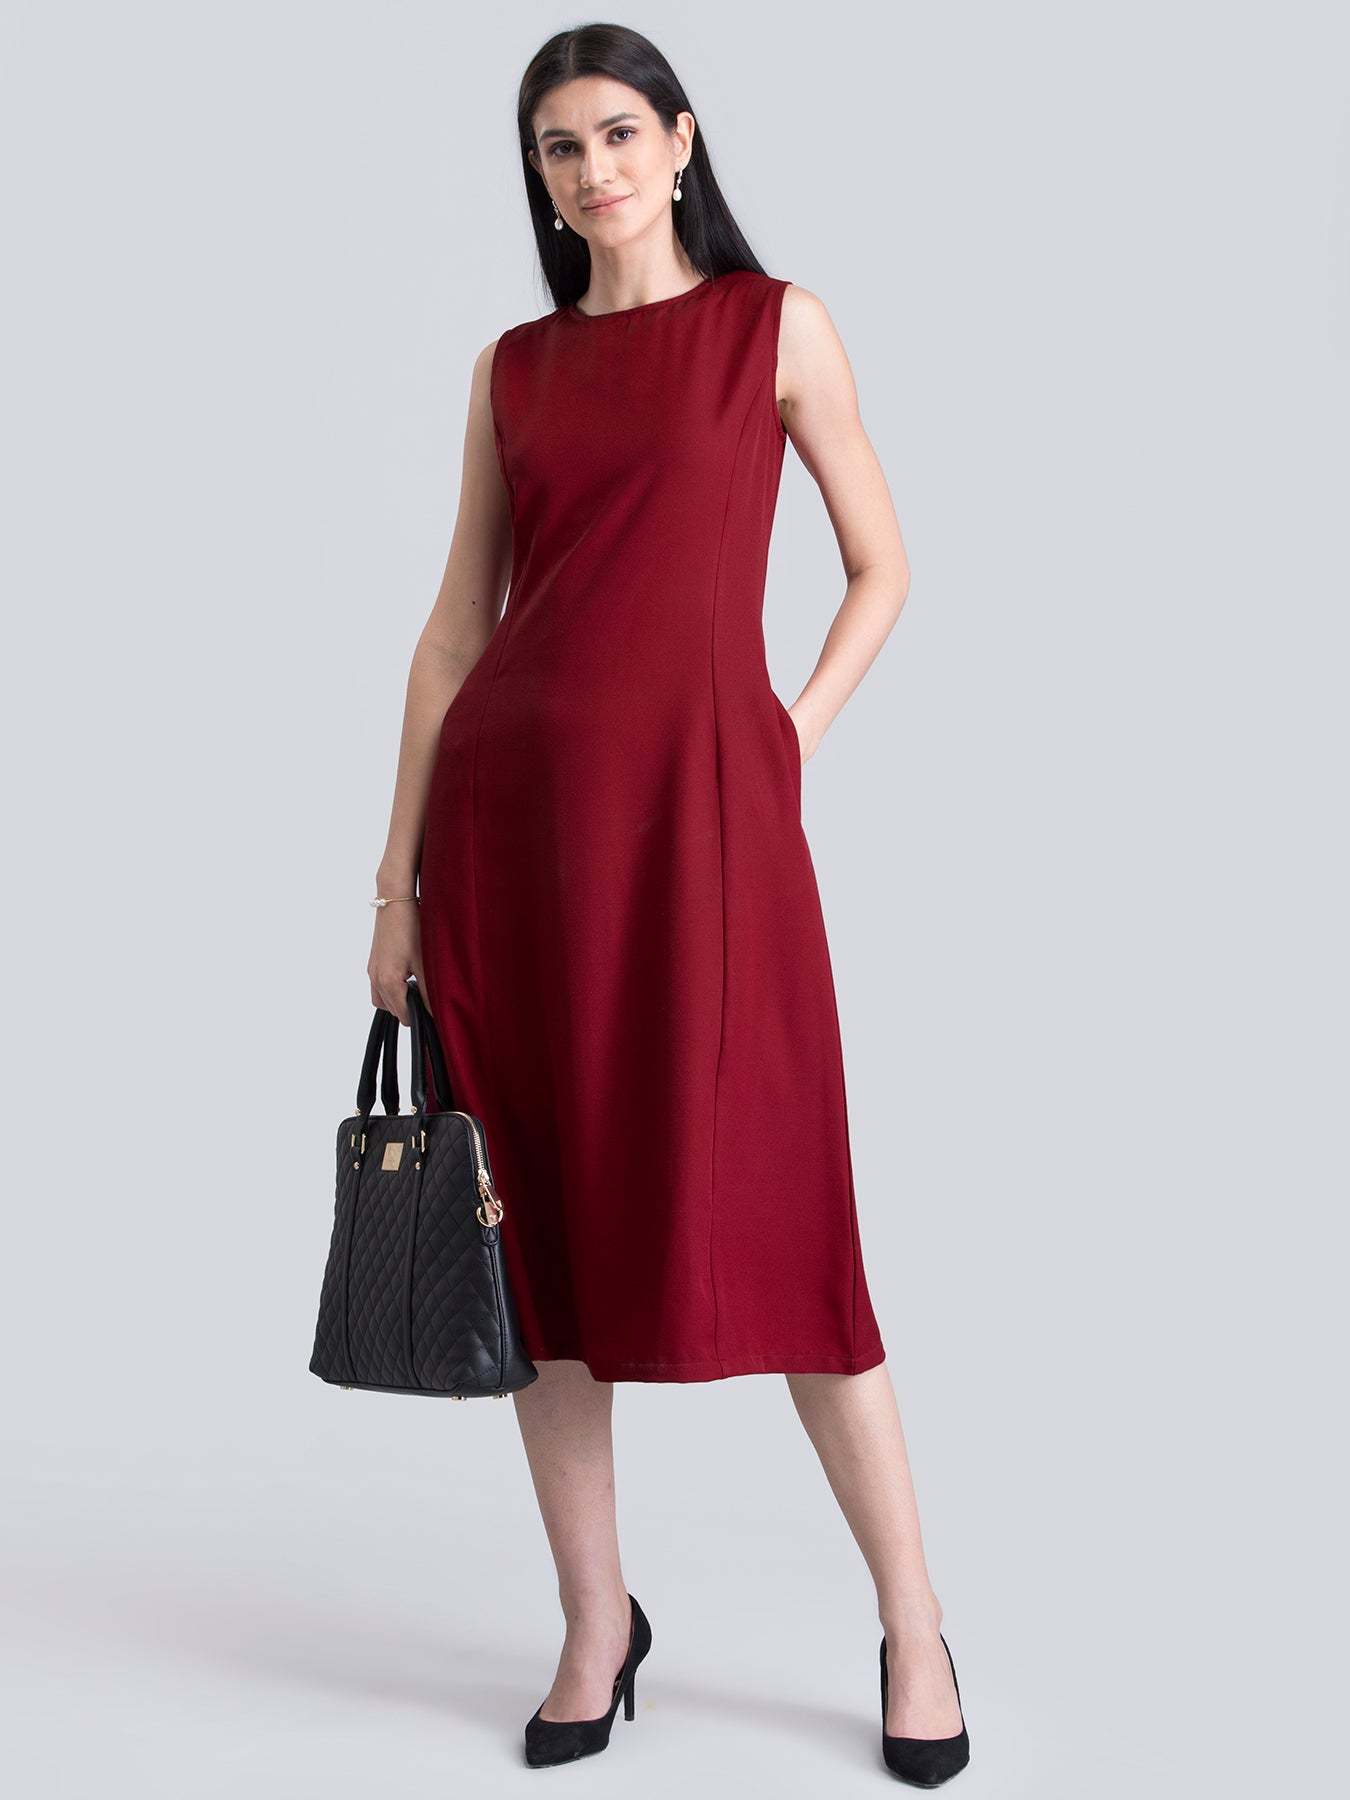 Stylised Neck A Line Dress - Red